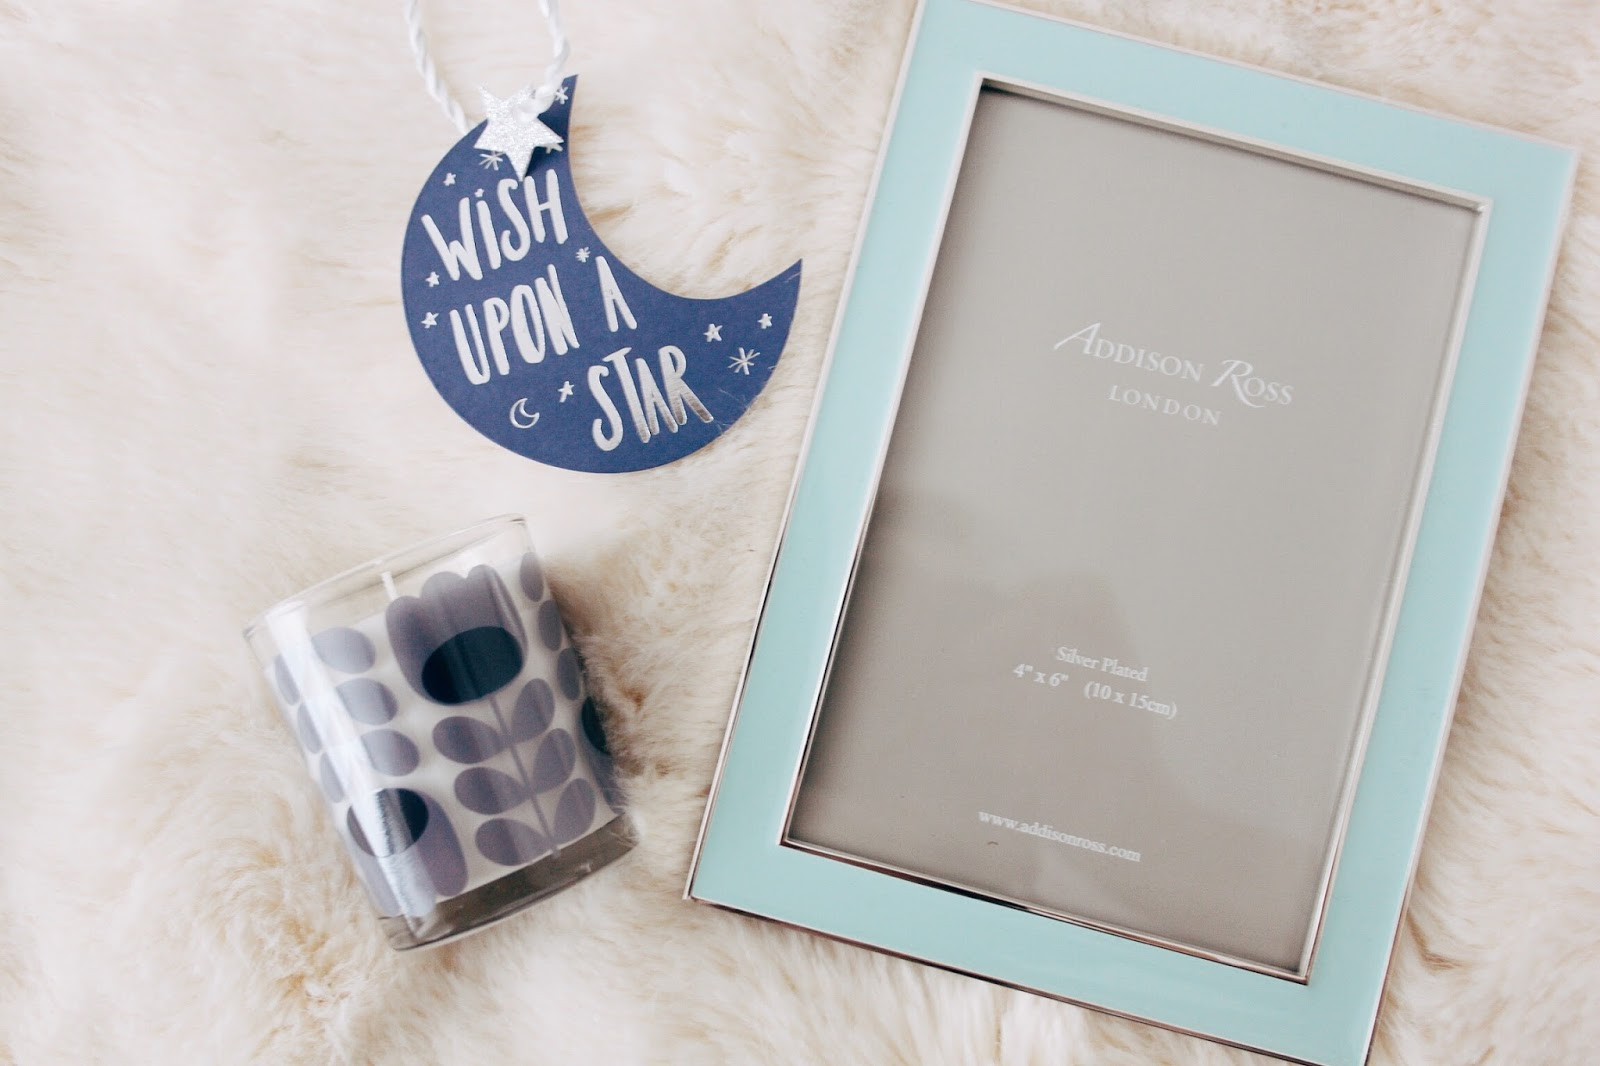 addison ross blue enamel photo frame